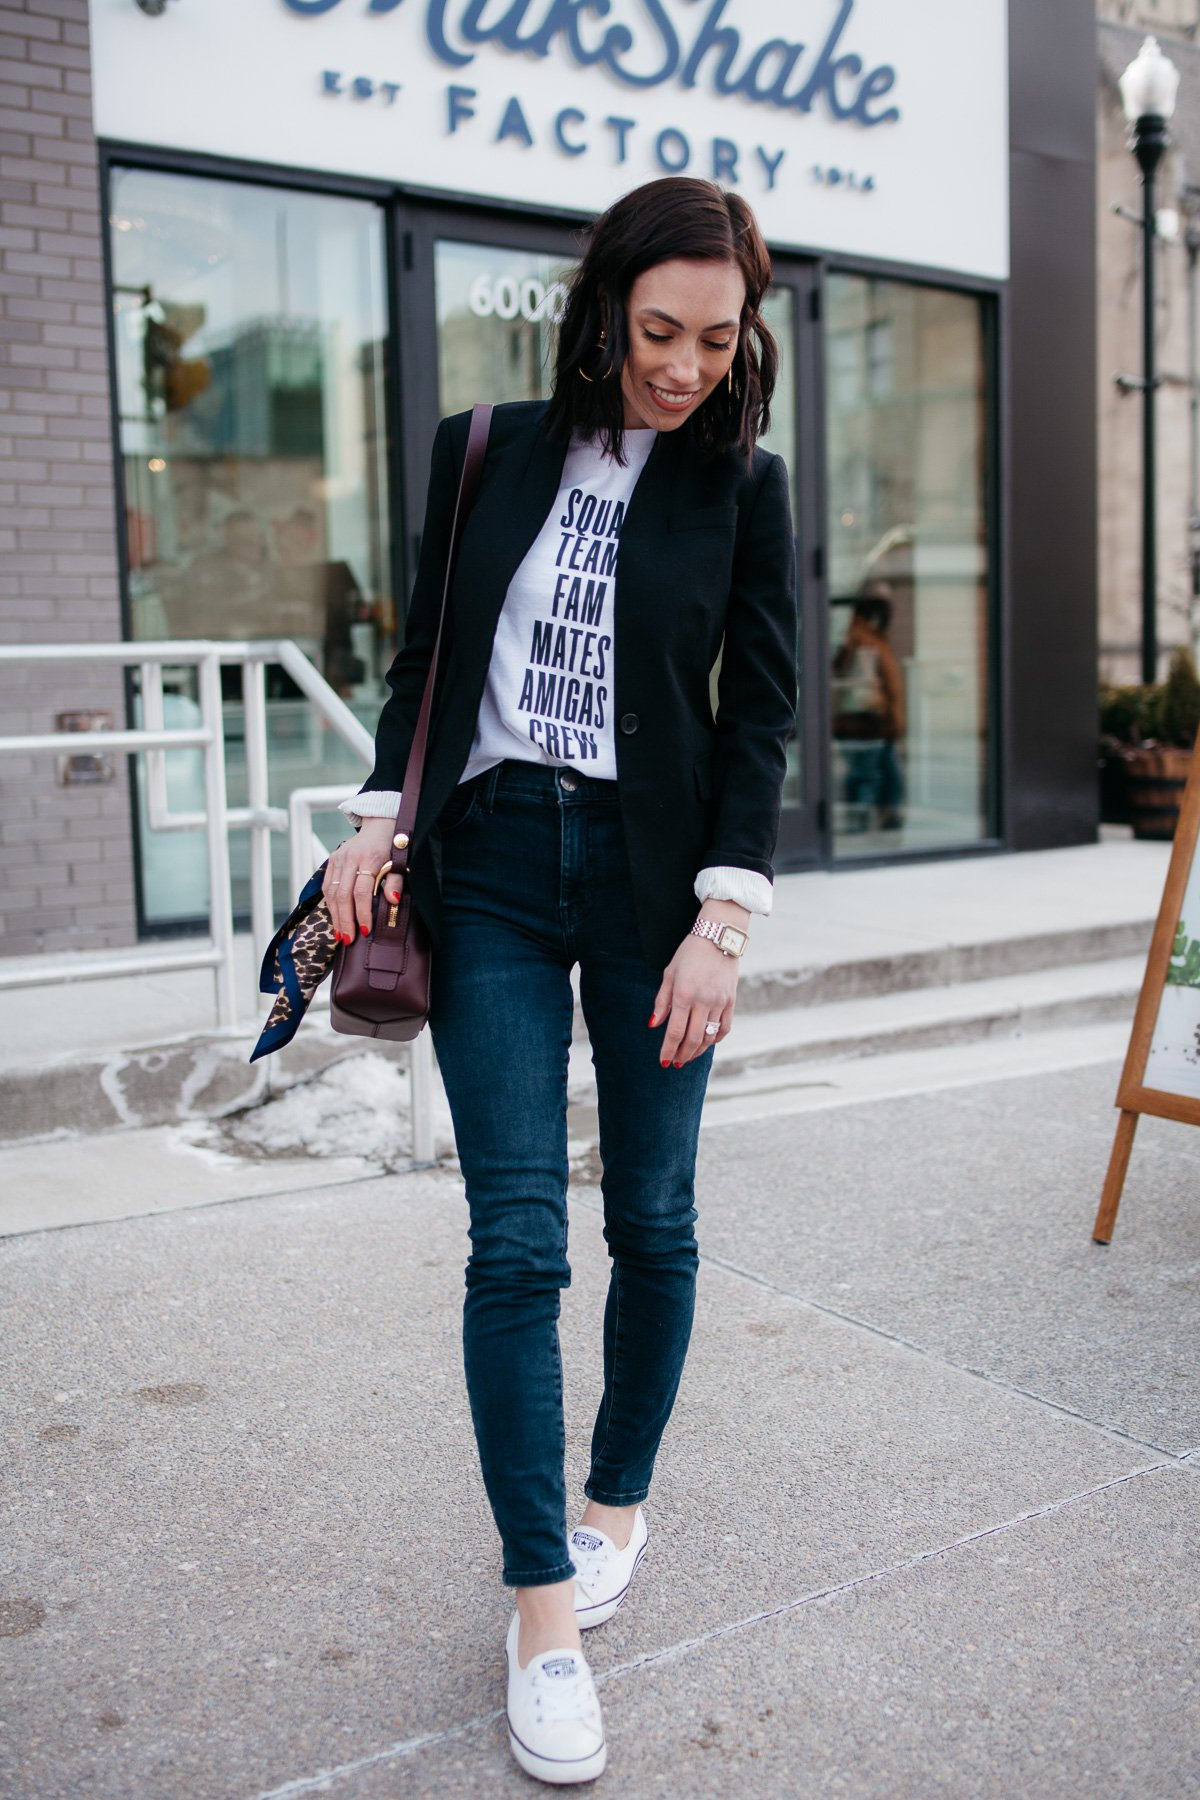 Top US fashion blogger, Wellesley & King, styles a graphic tshirt three ways: girl in tshirt, jcrew blazer, distressed jeans, and converse sneakers